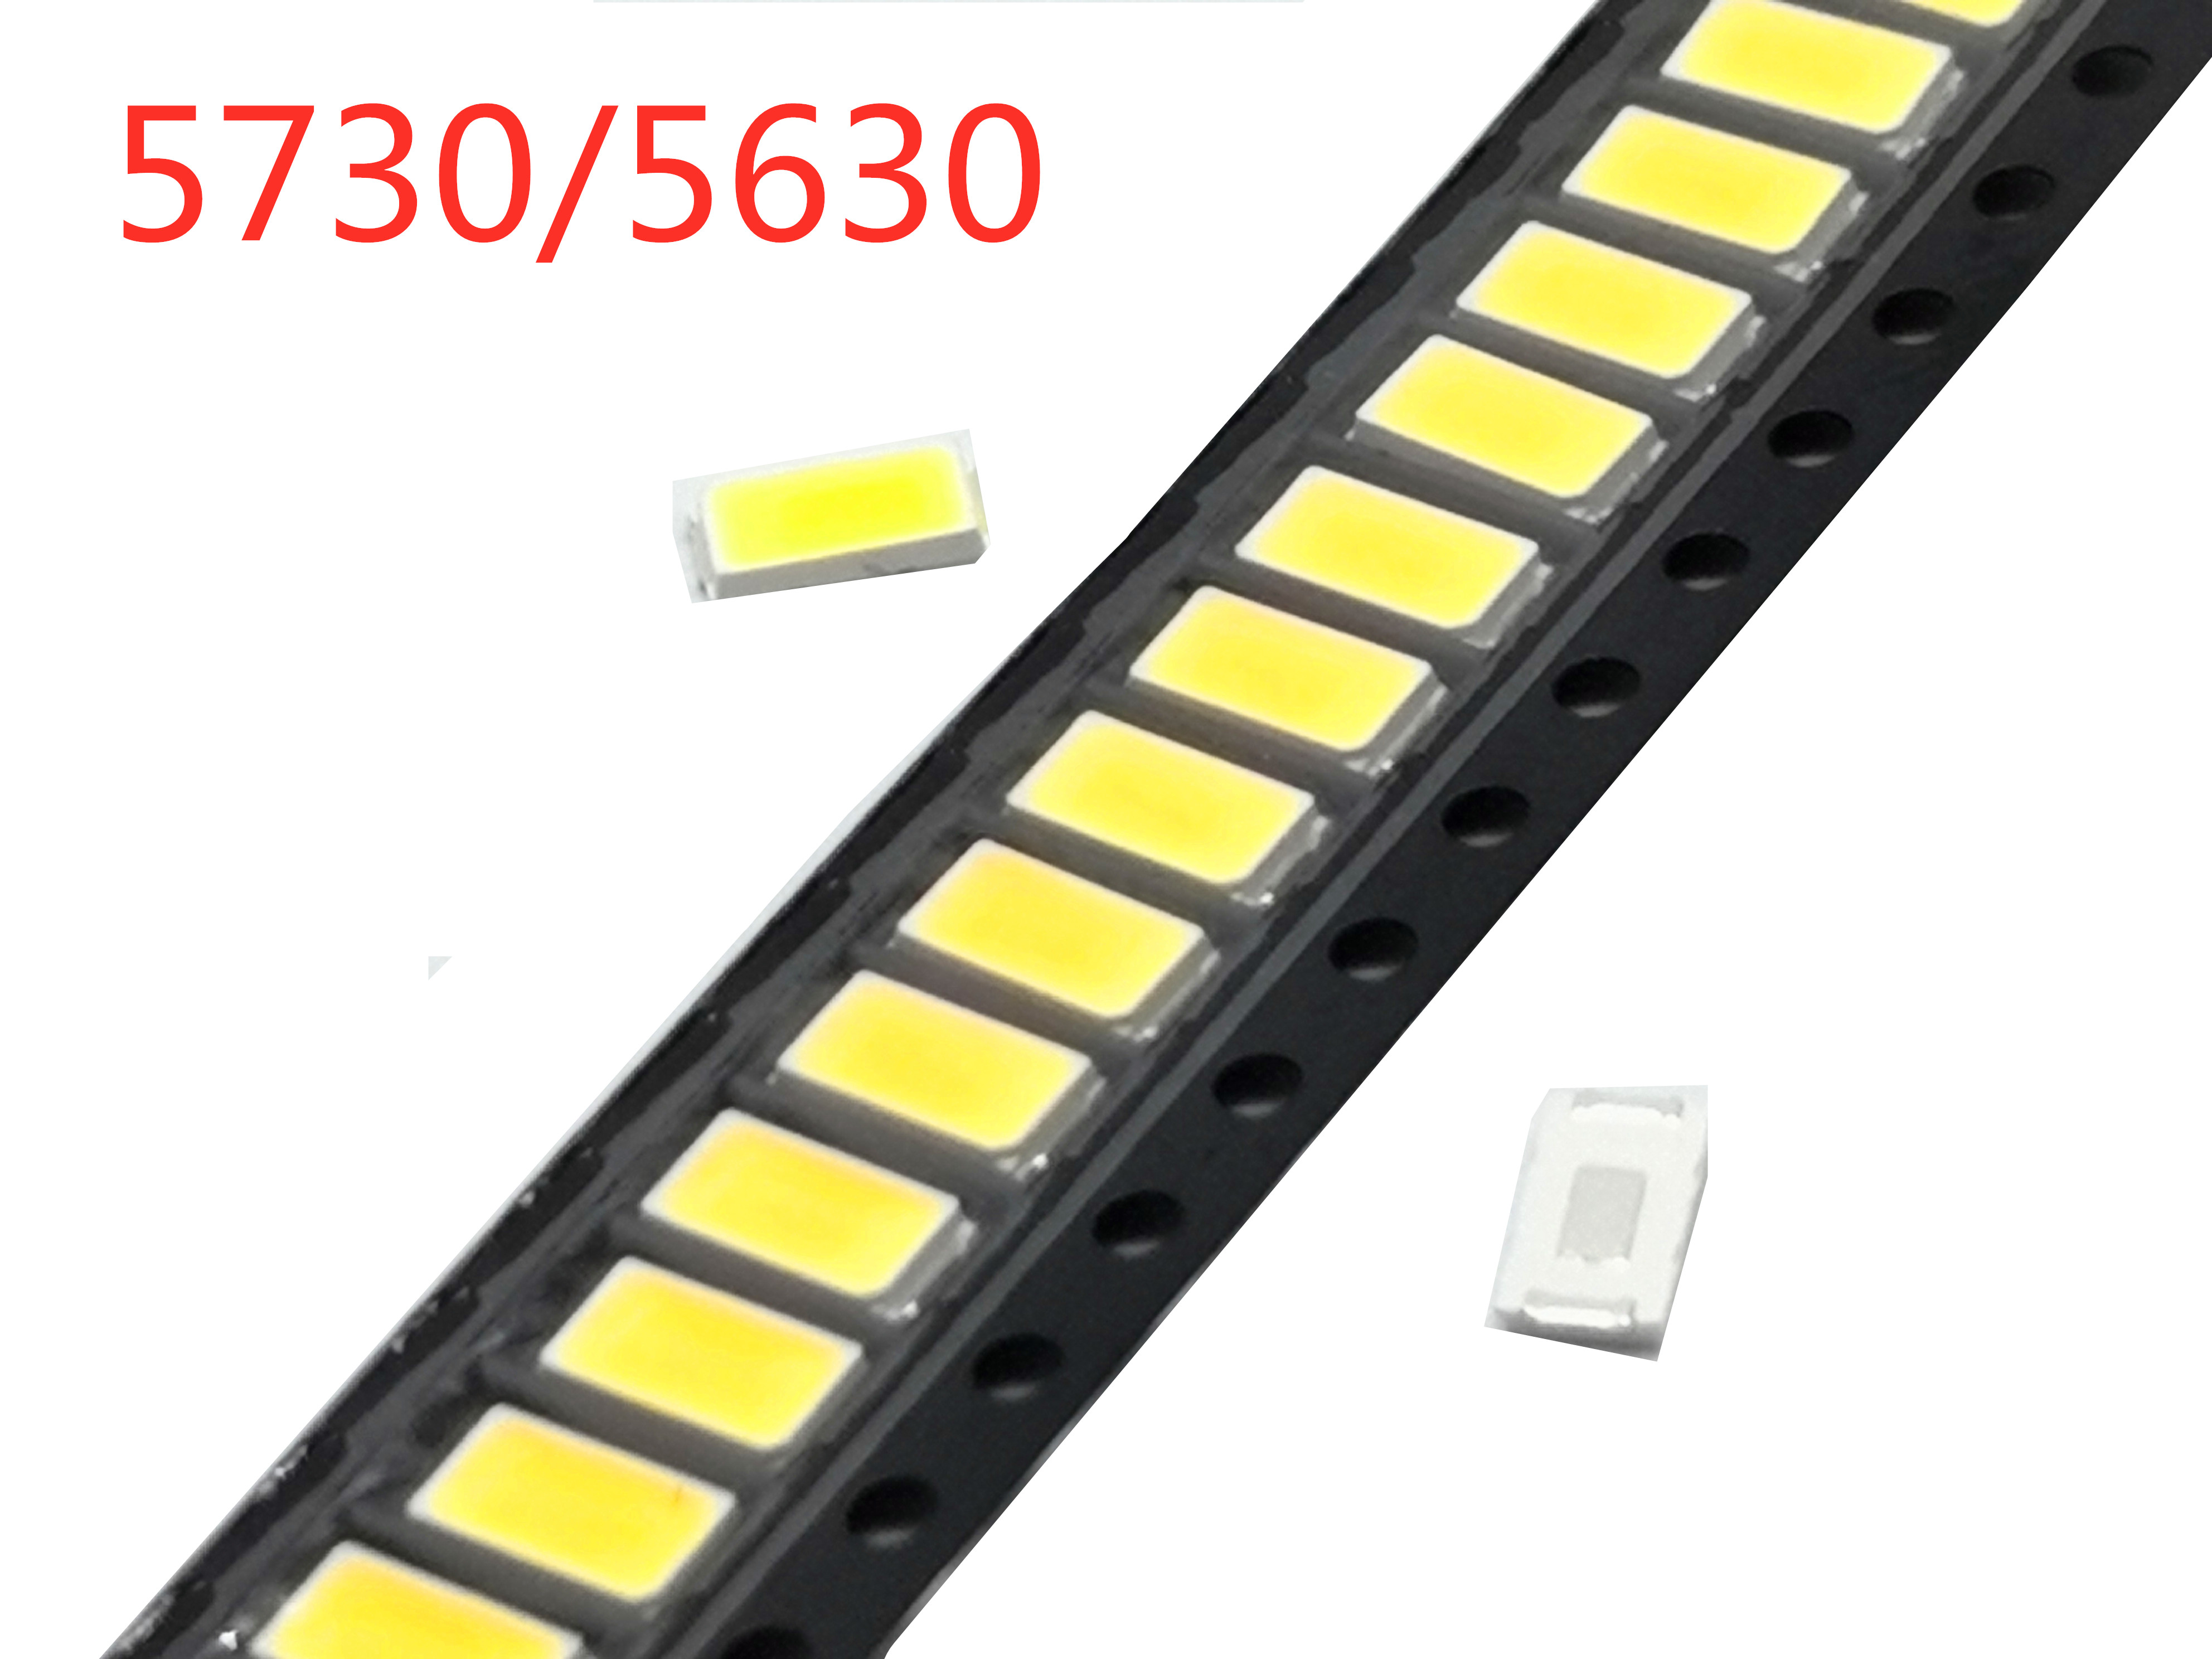 100 pcs SMD 5730 Diode White SMD5730 0.5W LED 5630 3000K 4000K 6000k 9500k Super Bright Chip 150mA PCB SMT Emitting Diode